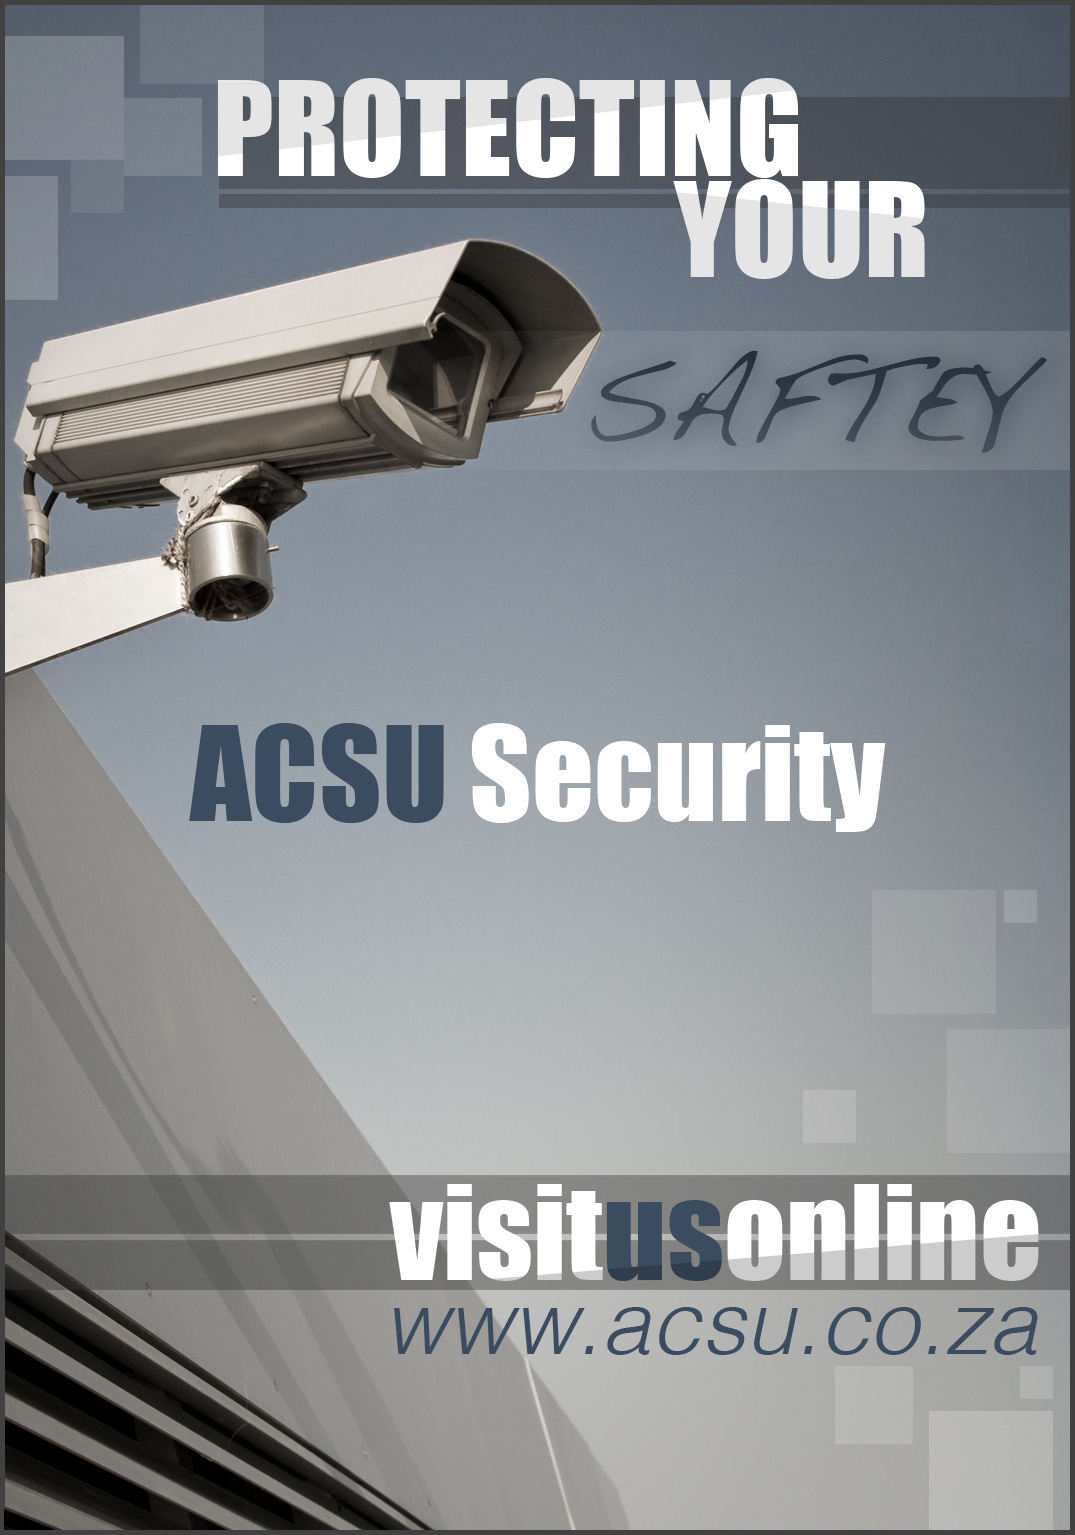 acsu security ad - wilferd guenthoer